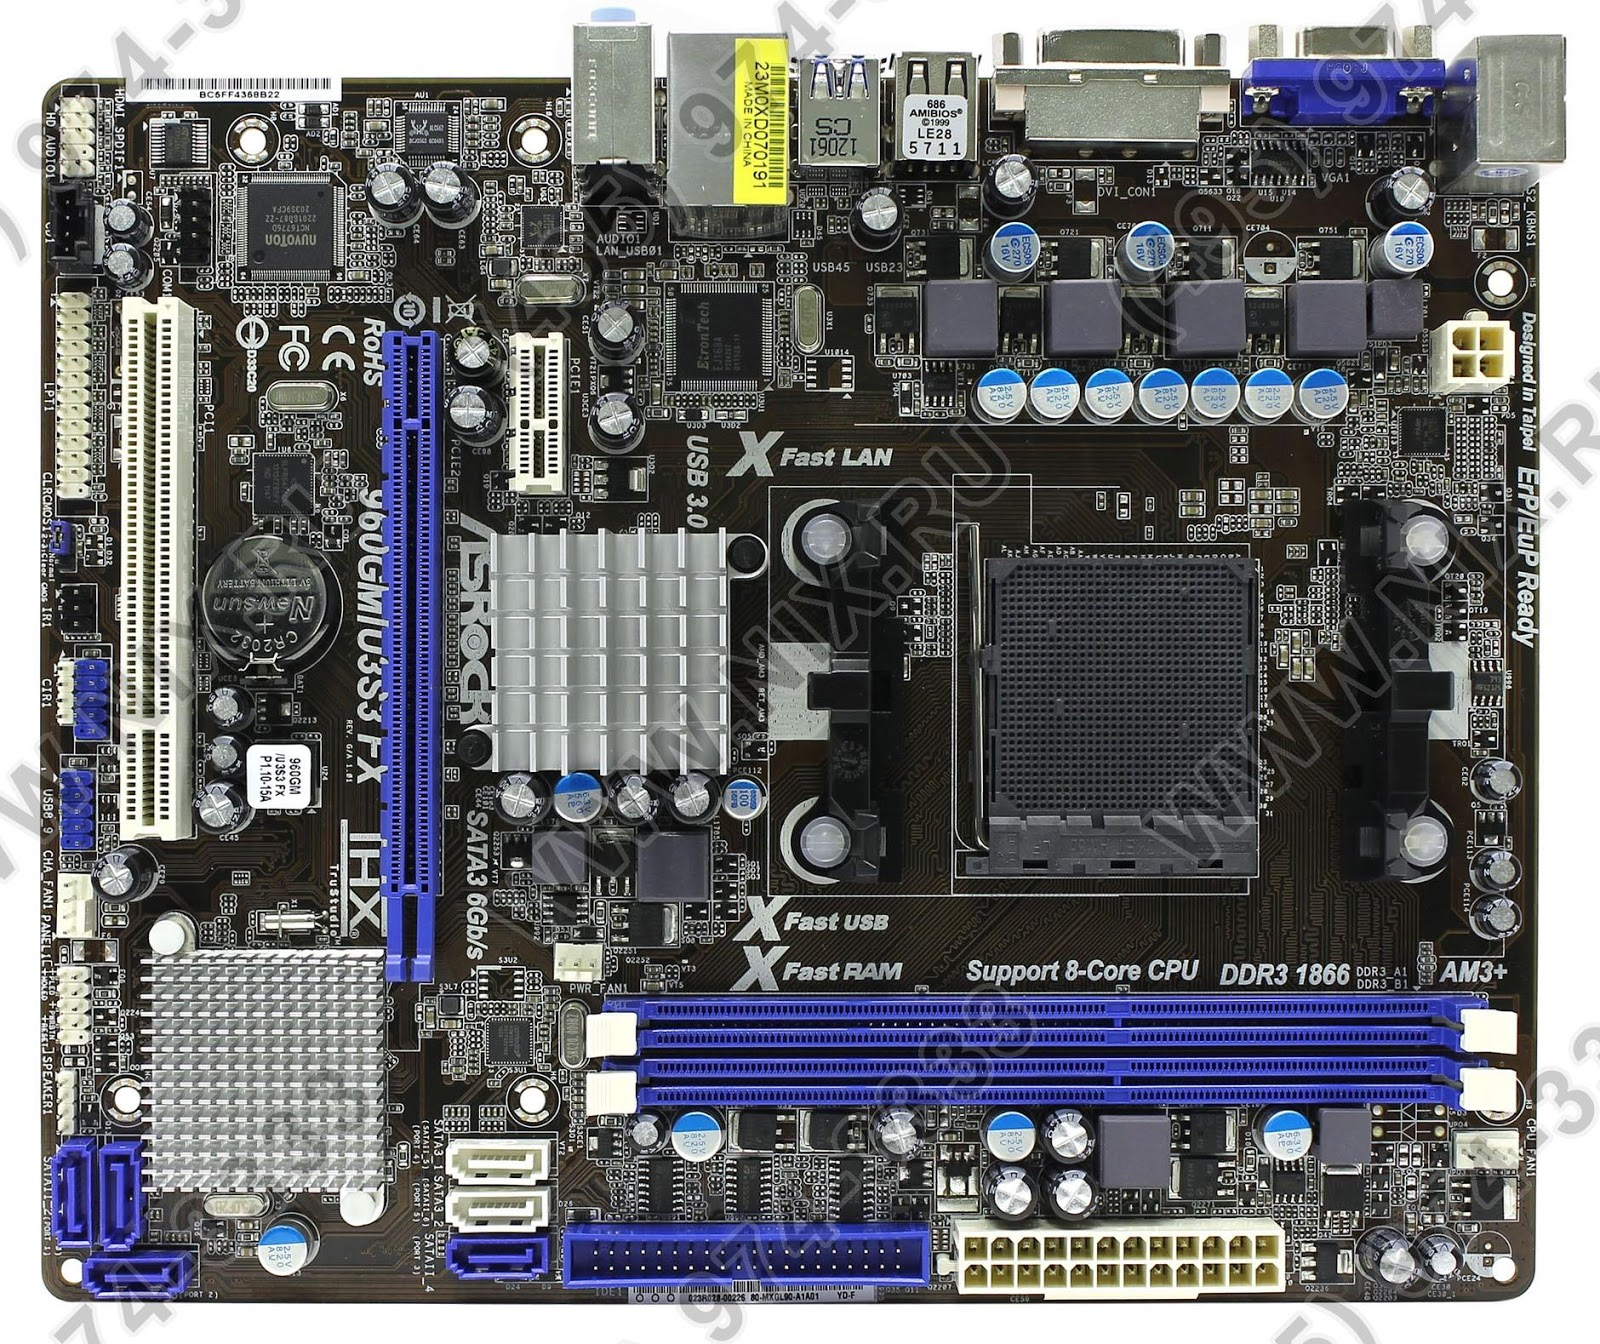 ASRock 970A-G/3.1 Etron USB 3.0 Driver Windows XP